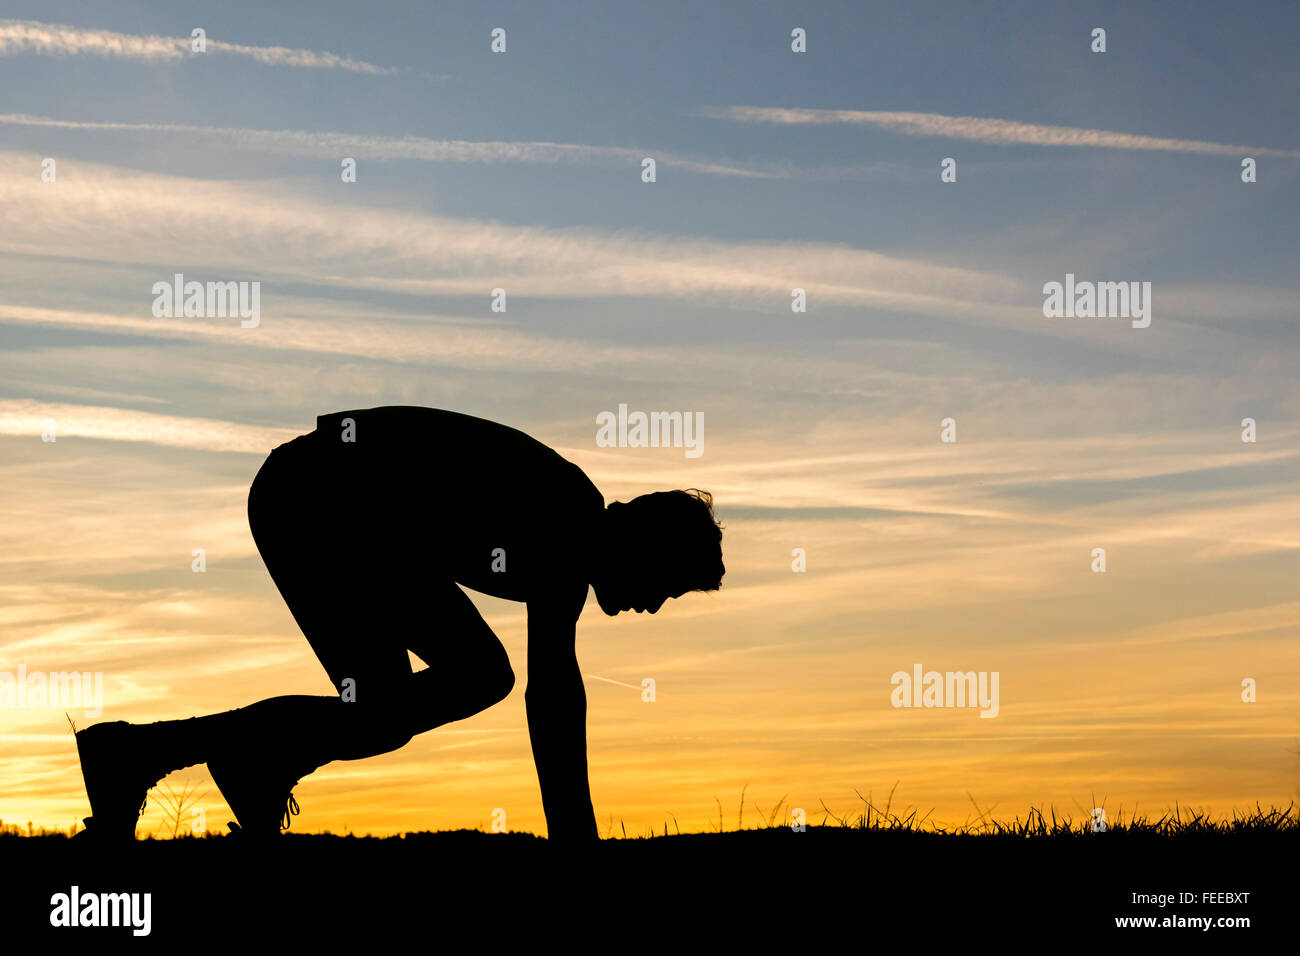 Silhouette, night sky, man crouching before sprint, athletics - Stock Image